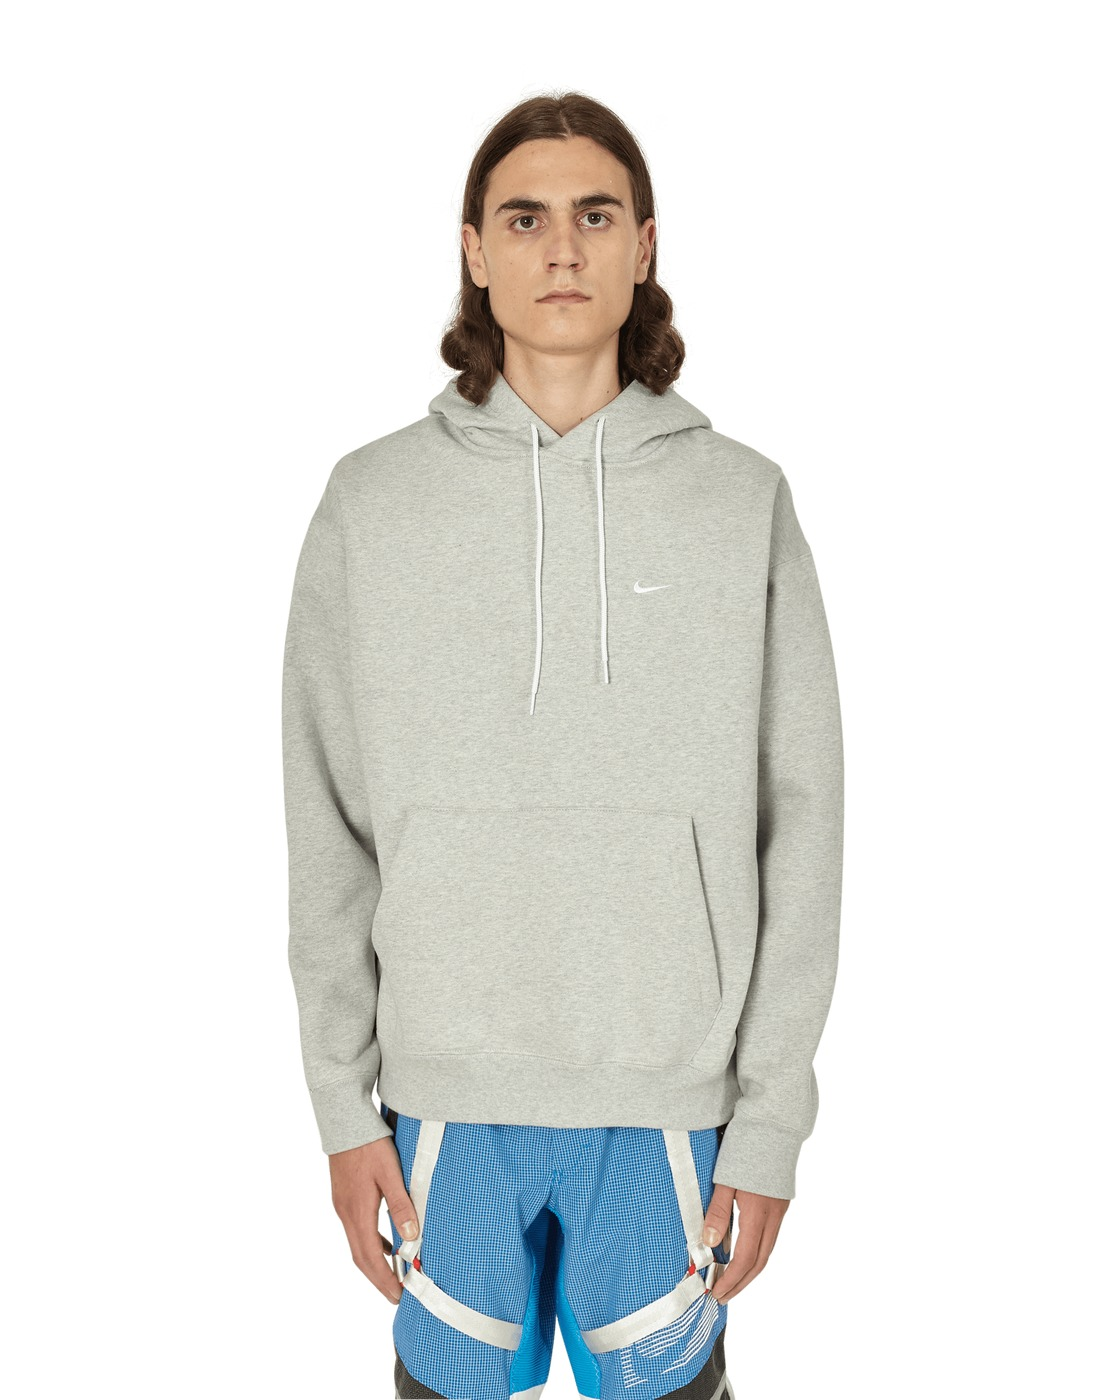 Nike Special Project Hooded Sweatshirt Grey Heather